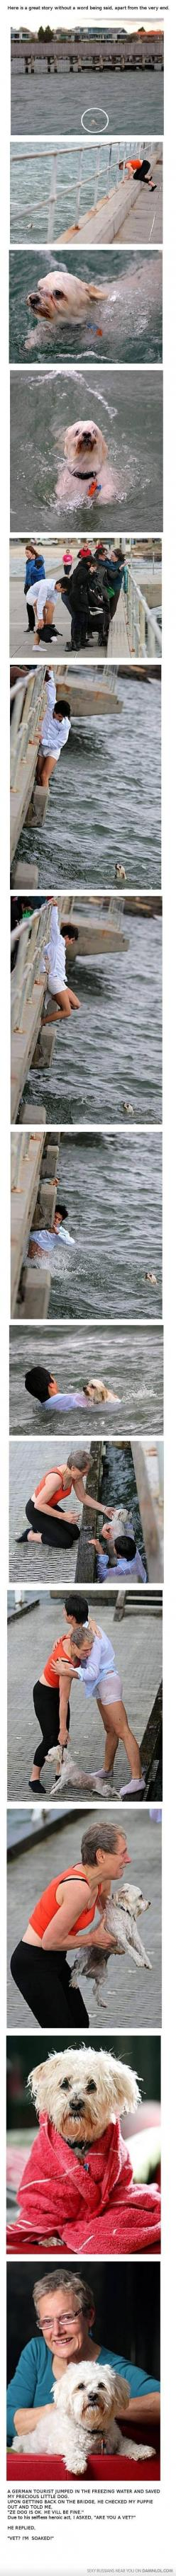 Saving a dog... the story at the end cracks me up.: Saves Dog, Amazing Stories, Sweet, Hero, Humanity Restored, German, Faith Restored, Faith In Humanity, Acts Of Kindness